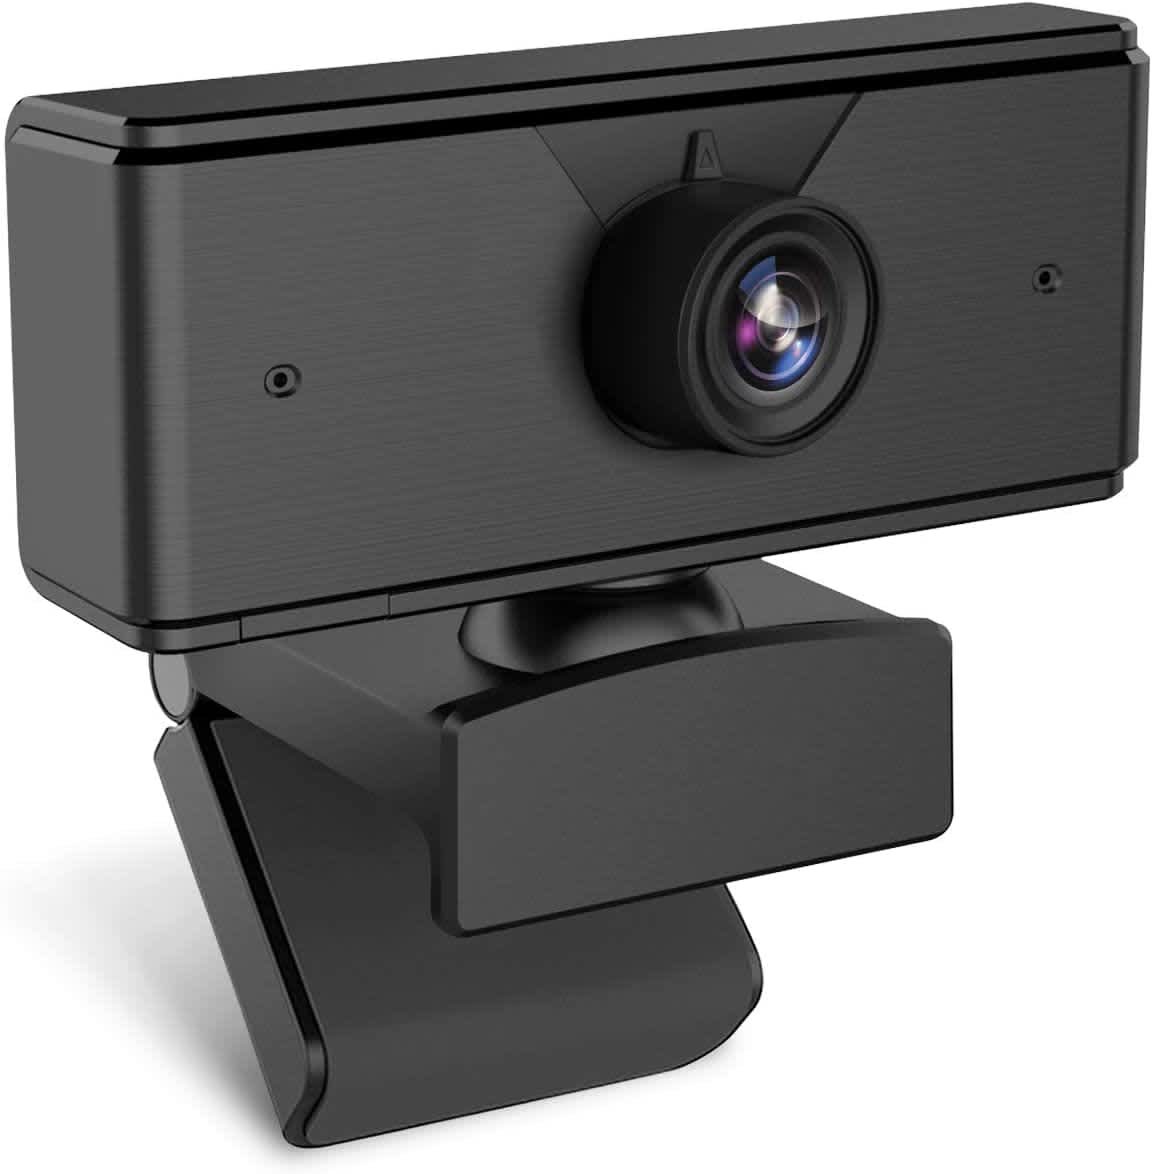 Ylife 1080p HD Webcam with Microphone